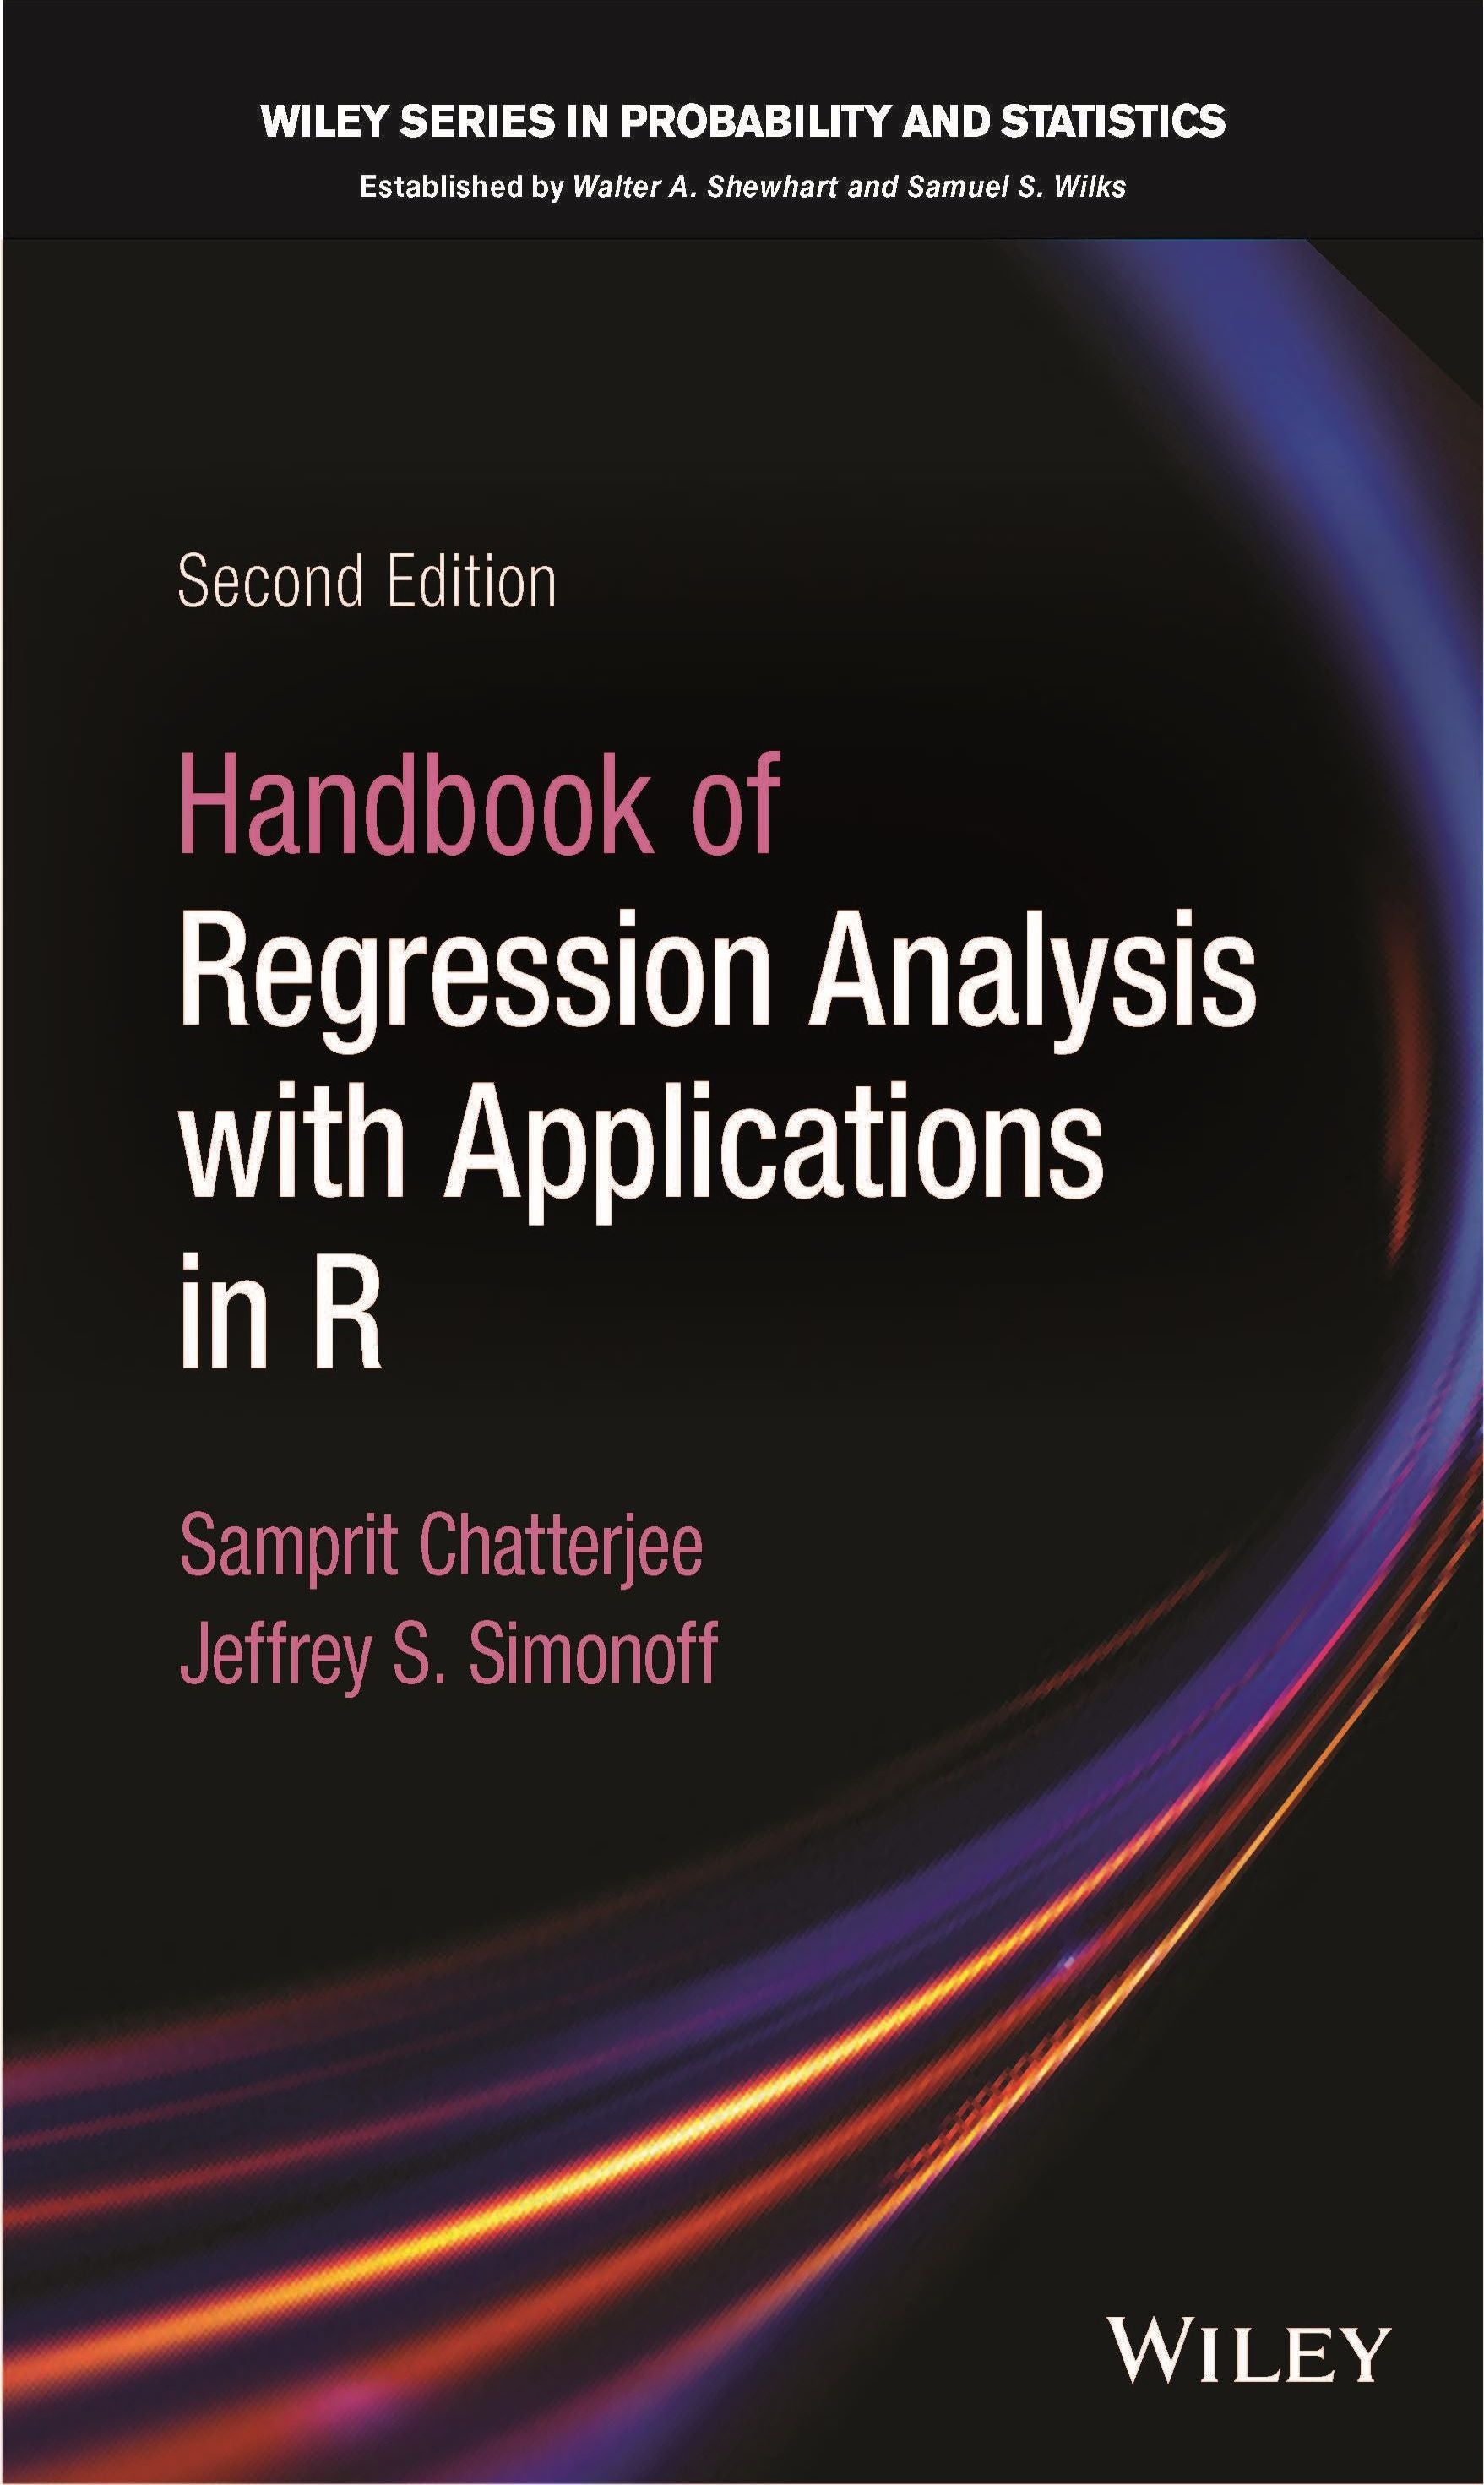 Cover of Handbook of Regression Analysis with Applications in R by Samprit Chatterjee and Jeffrey Simonoff